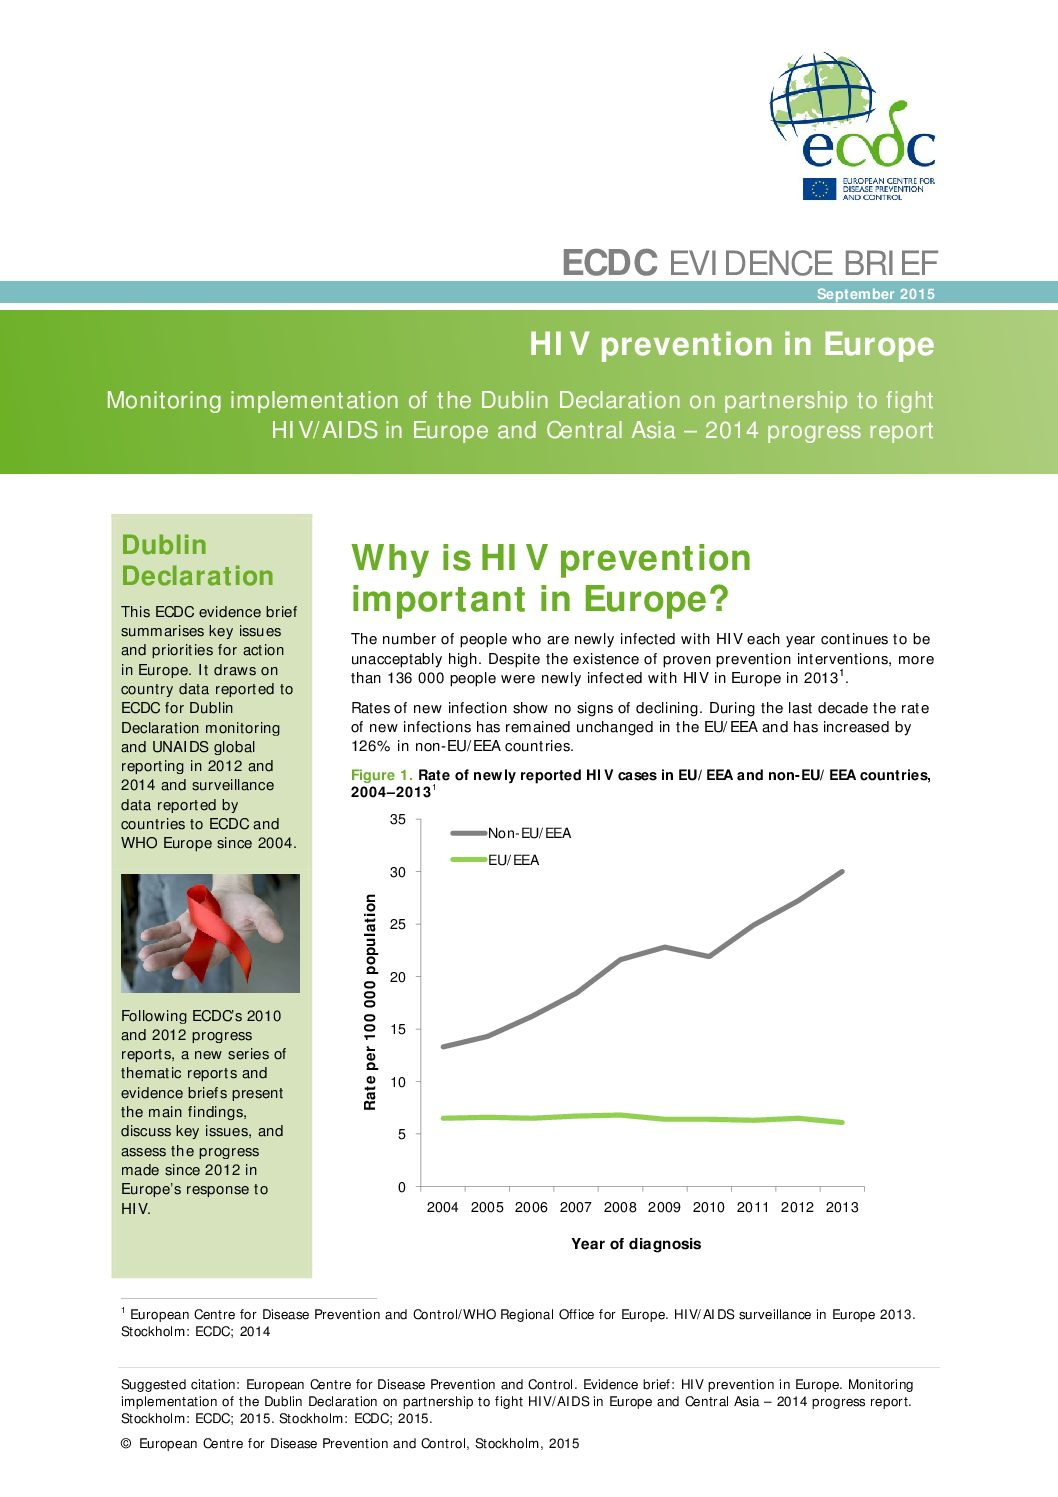 HIV prevention in Europe. Monitoring implementation of the Dublin Declaration on partnership to fight HIV/AIDS in Europe and Central Asia – 2014 progress report